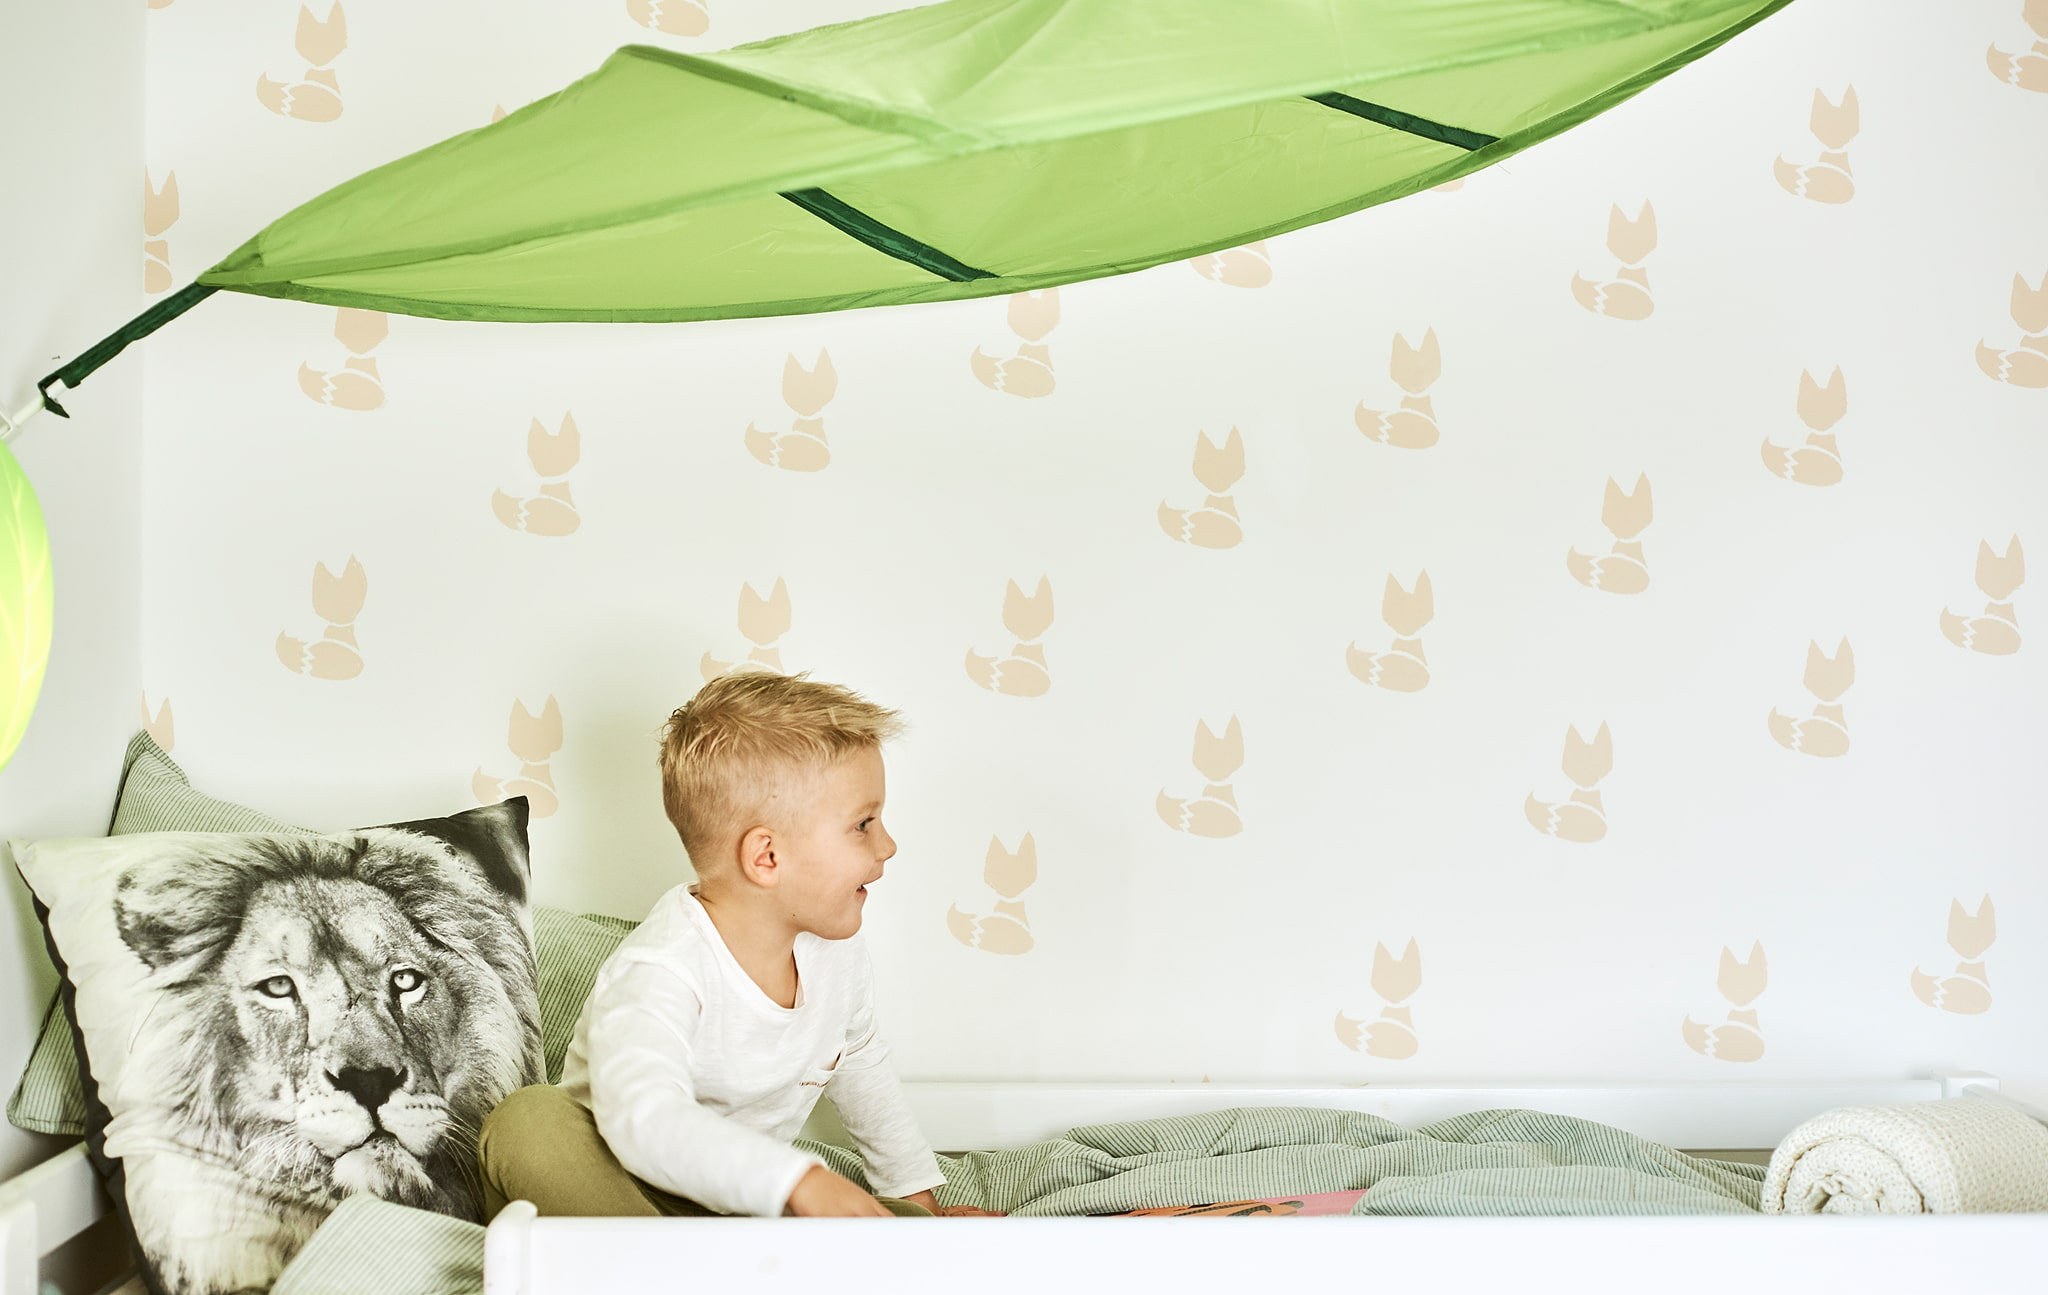 A child sits on a bed with green duvet and a cushion printed with a lion's face, above the bed is a green leaf-shaped canopy.